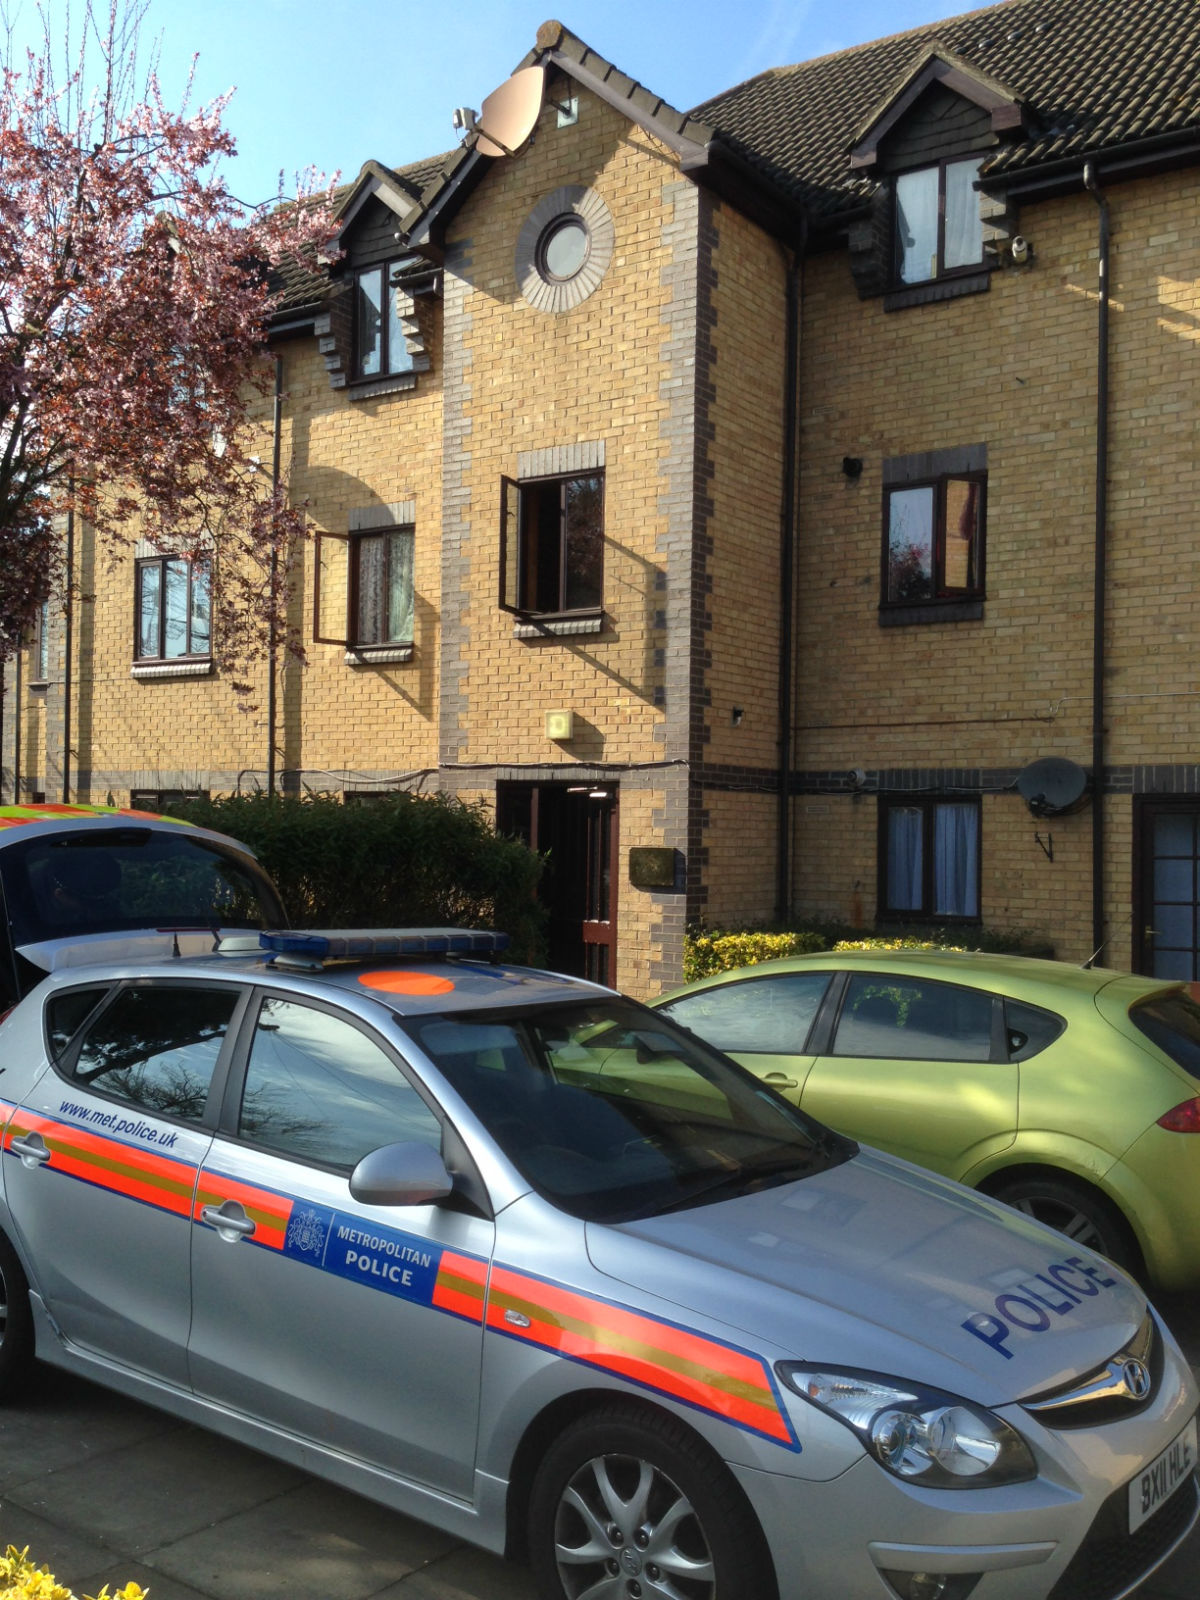 A police car outside a block of flats in Falcon Way where Rivka Holden was murdered.